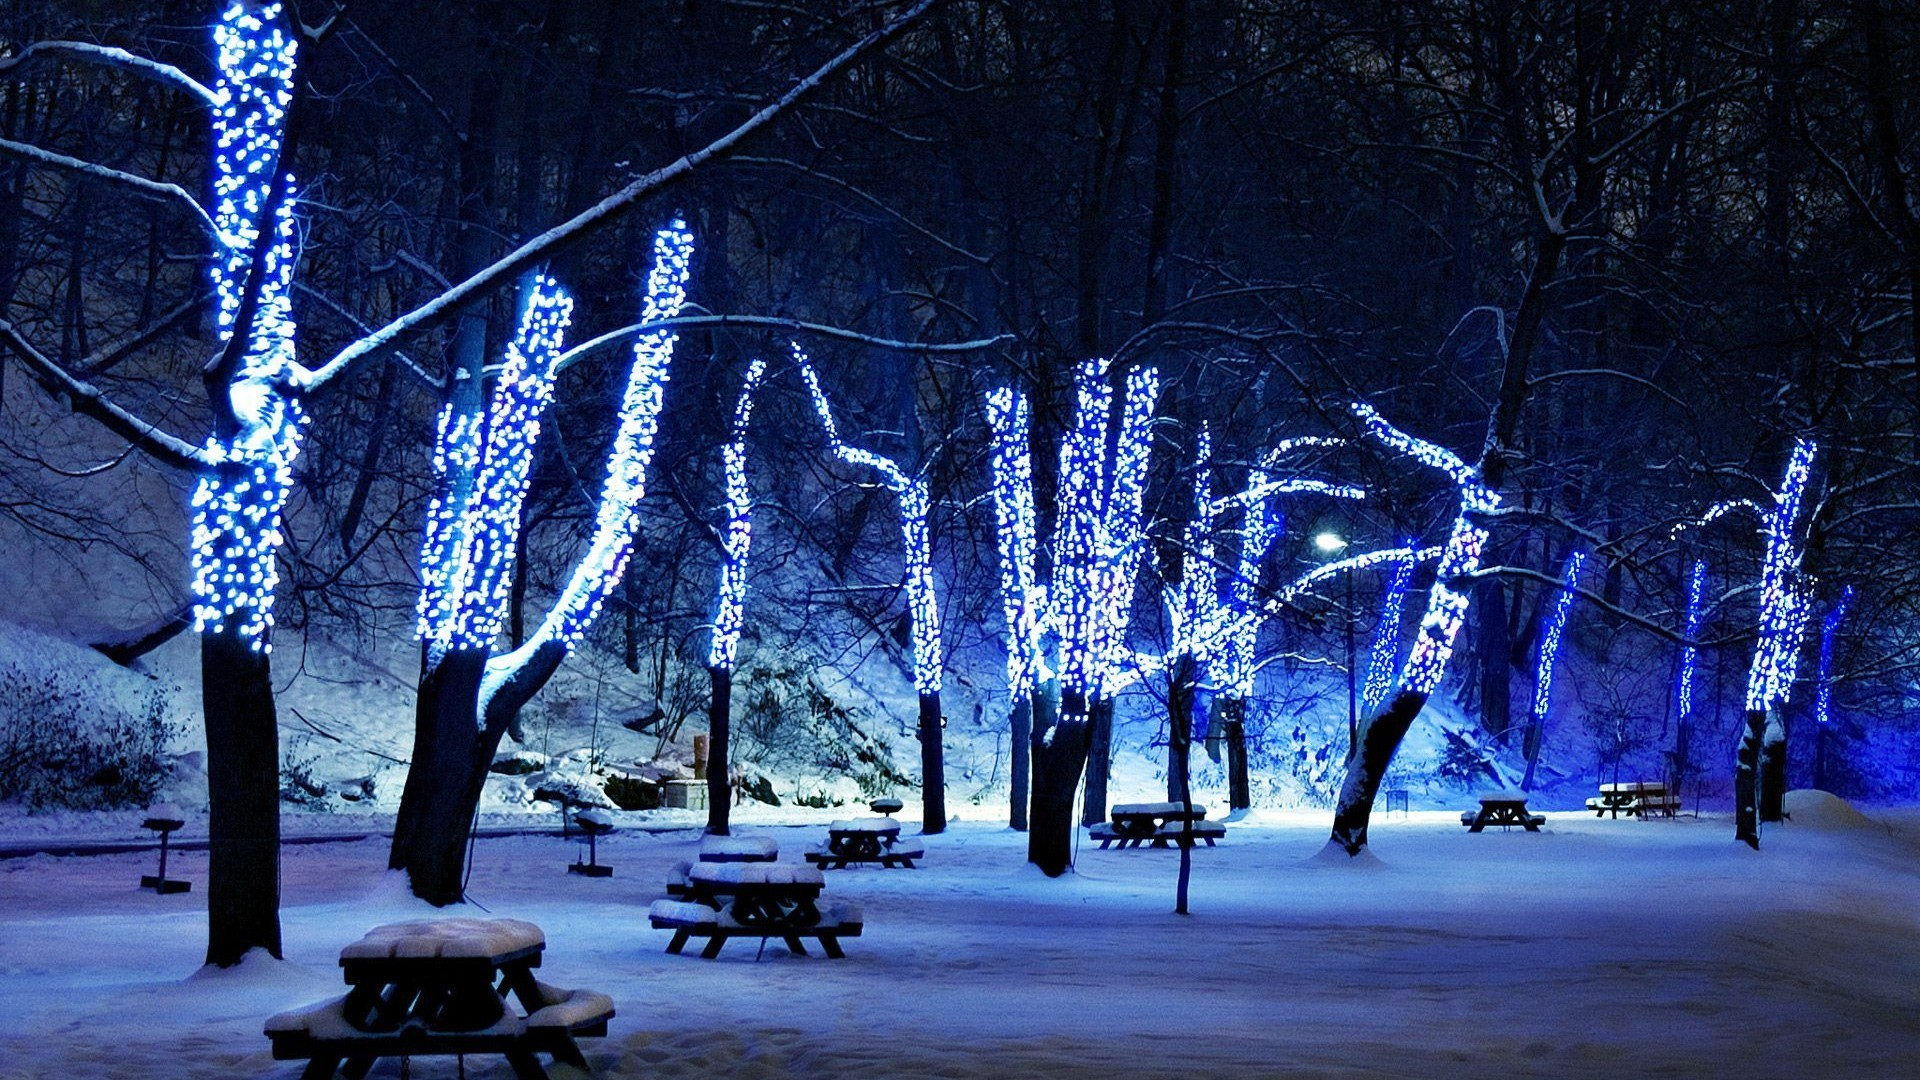 1920x1080 Christmas-Lights-Wallpapers-HD-Wallpaper 2013